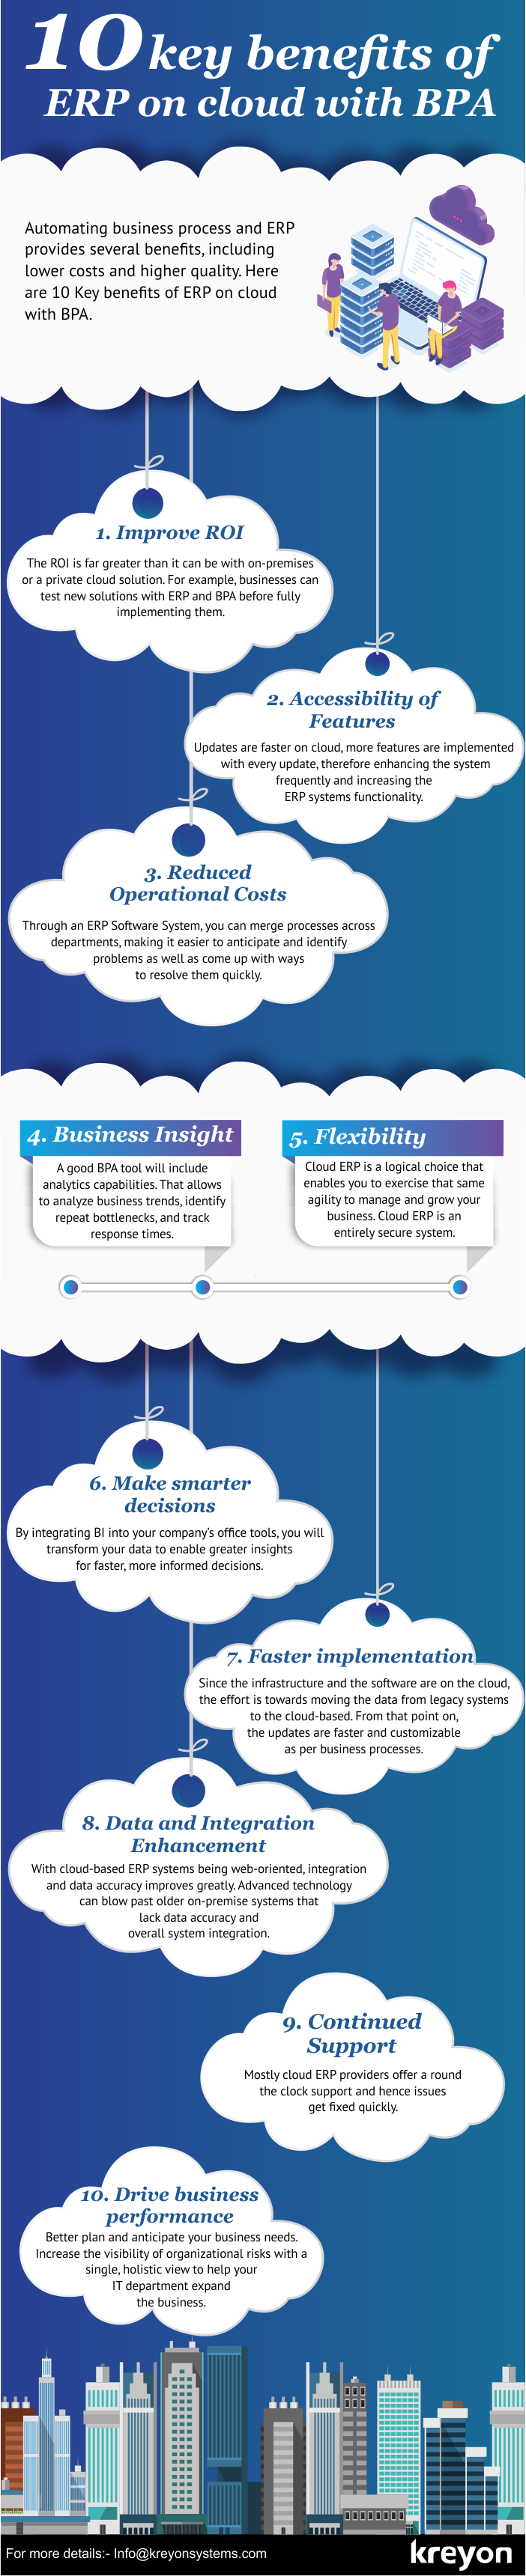 10 key benefits of ERP on cloud with BPA